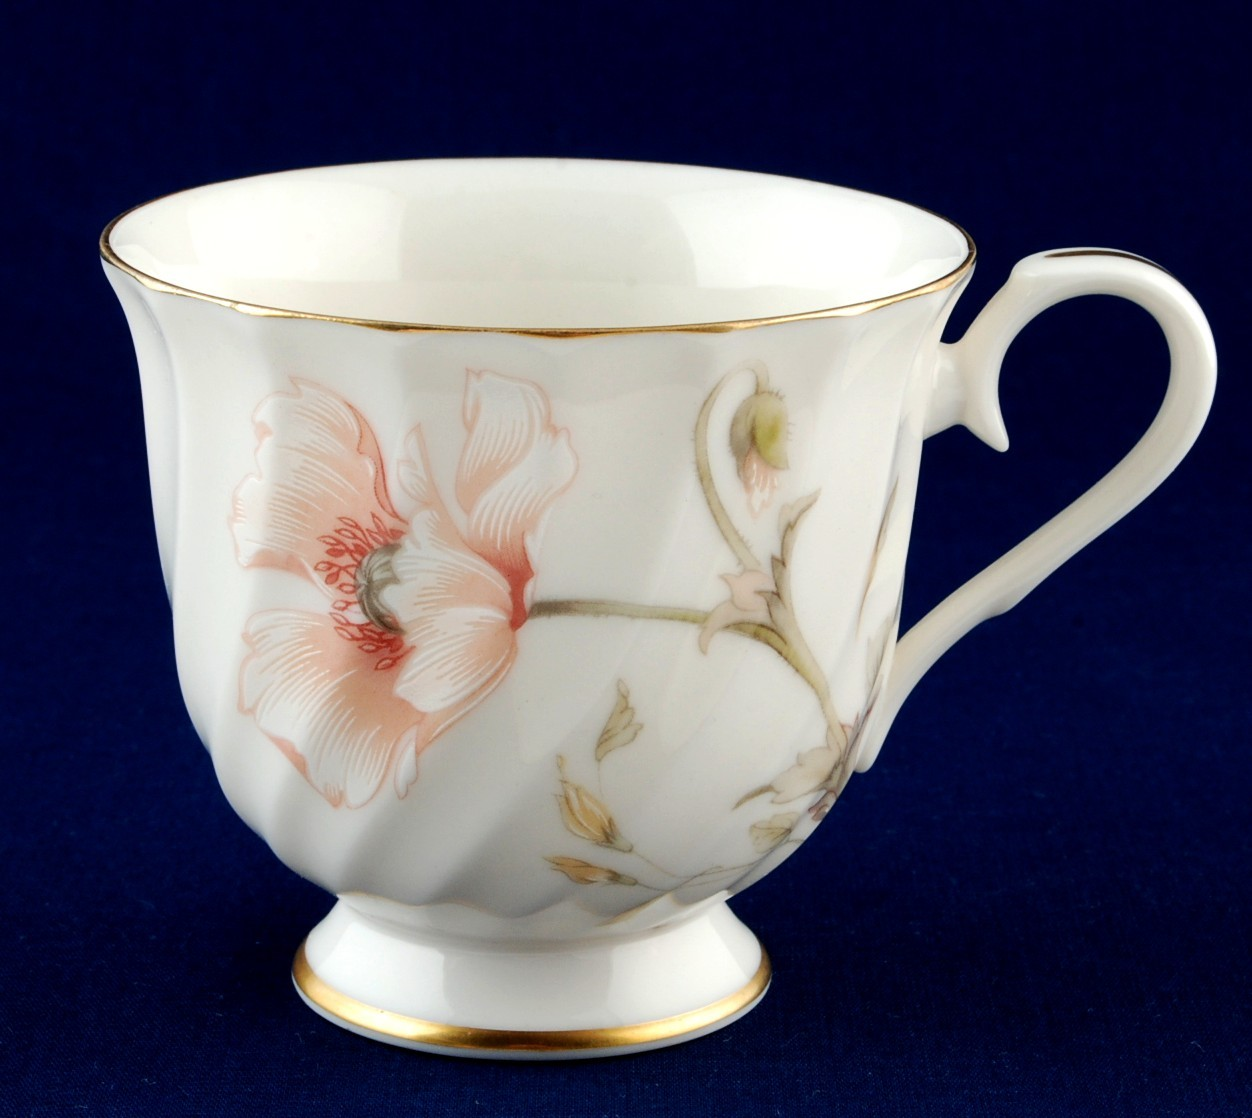 Gorham Trellis Footed Cup Fine China New